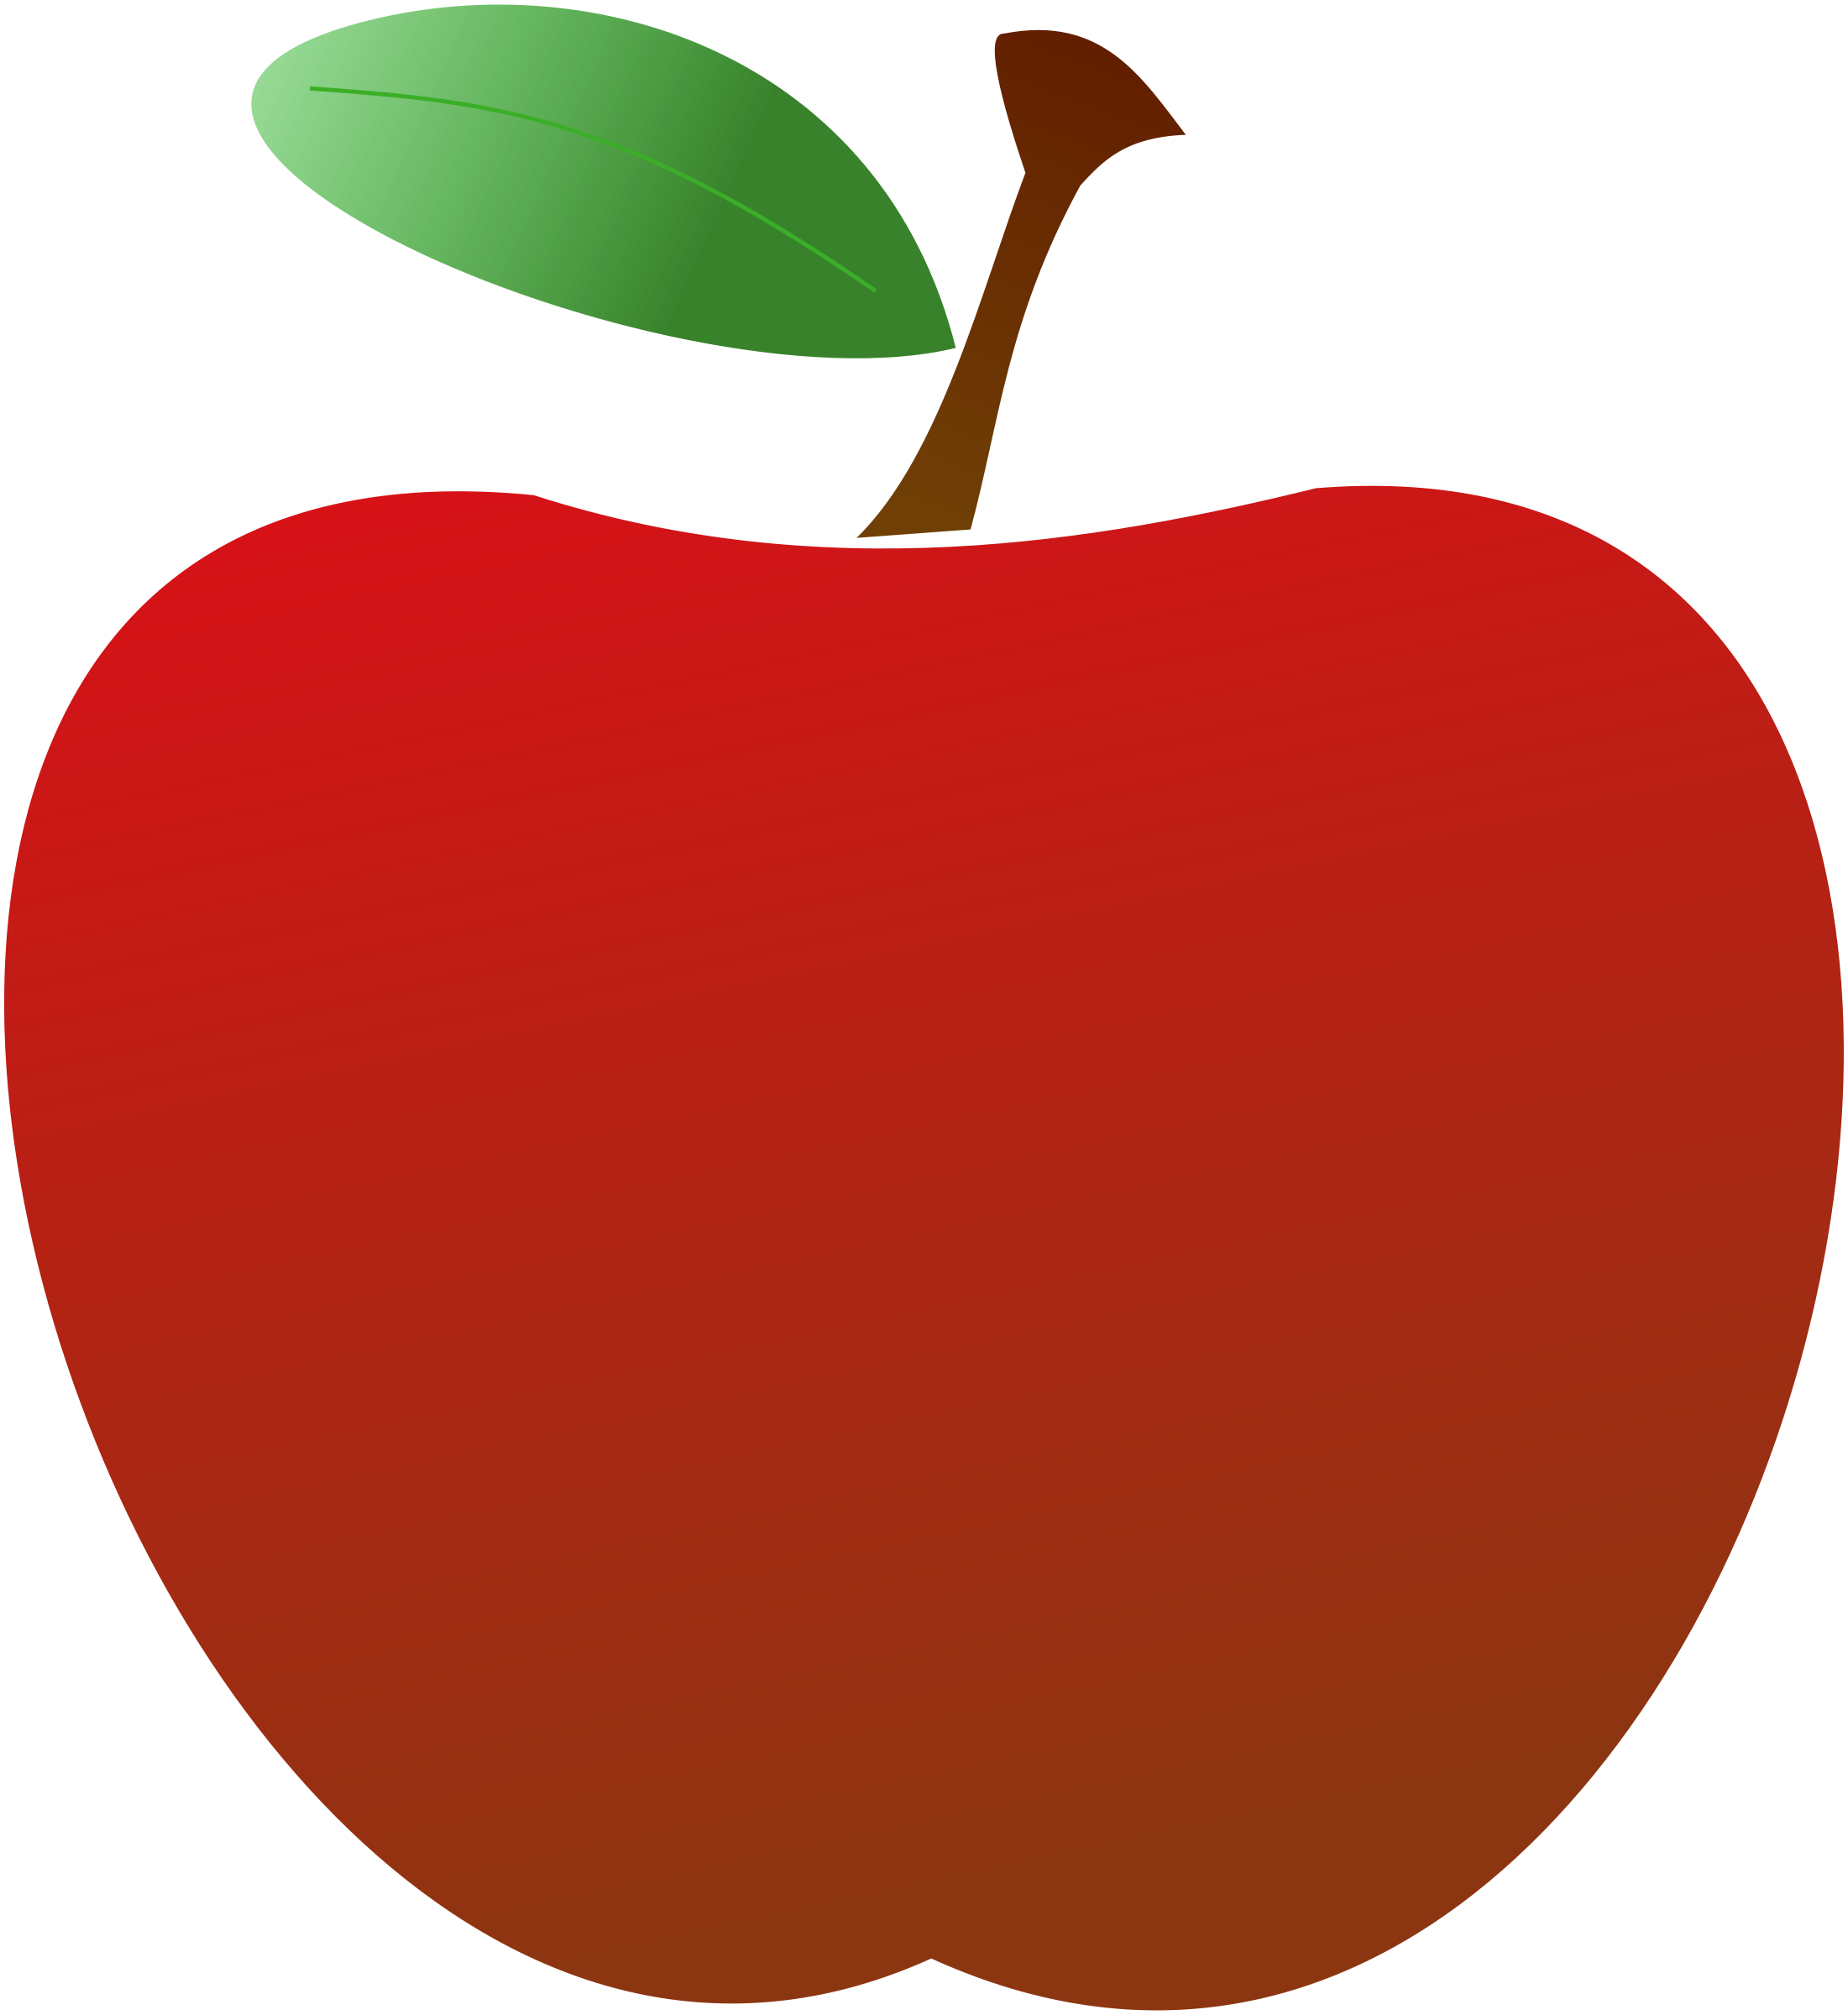 Heart apple clipart jpg freeuse download Teacher Apple Clipart | Clipart Panda - Free Clipart Images ... jpg freeuse download